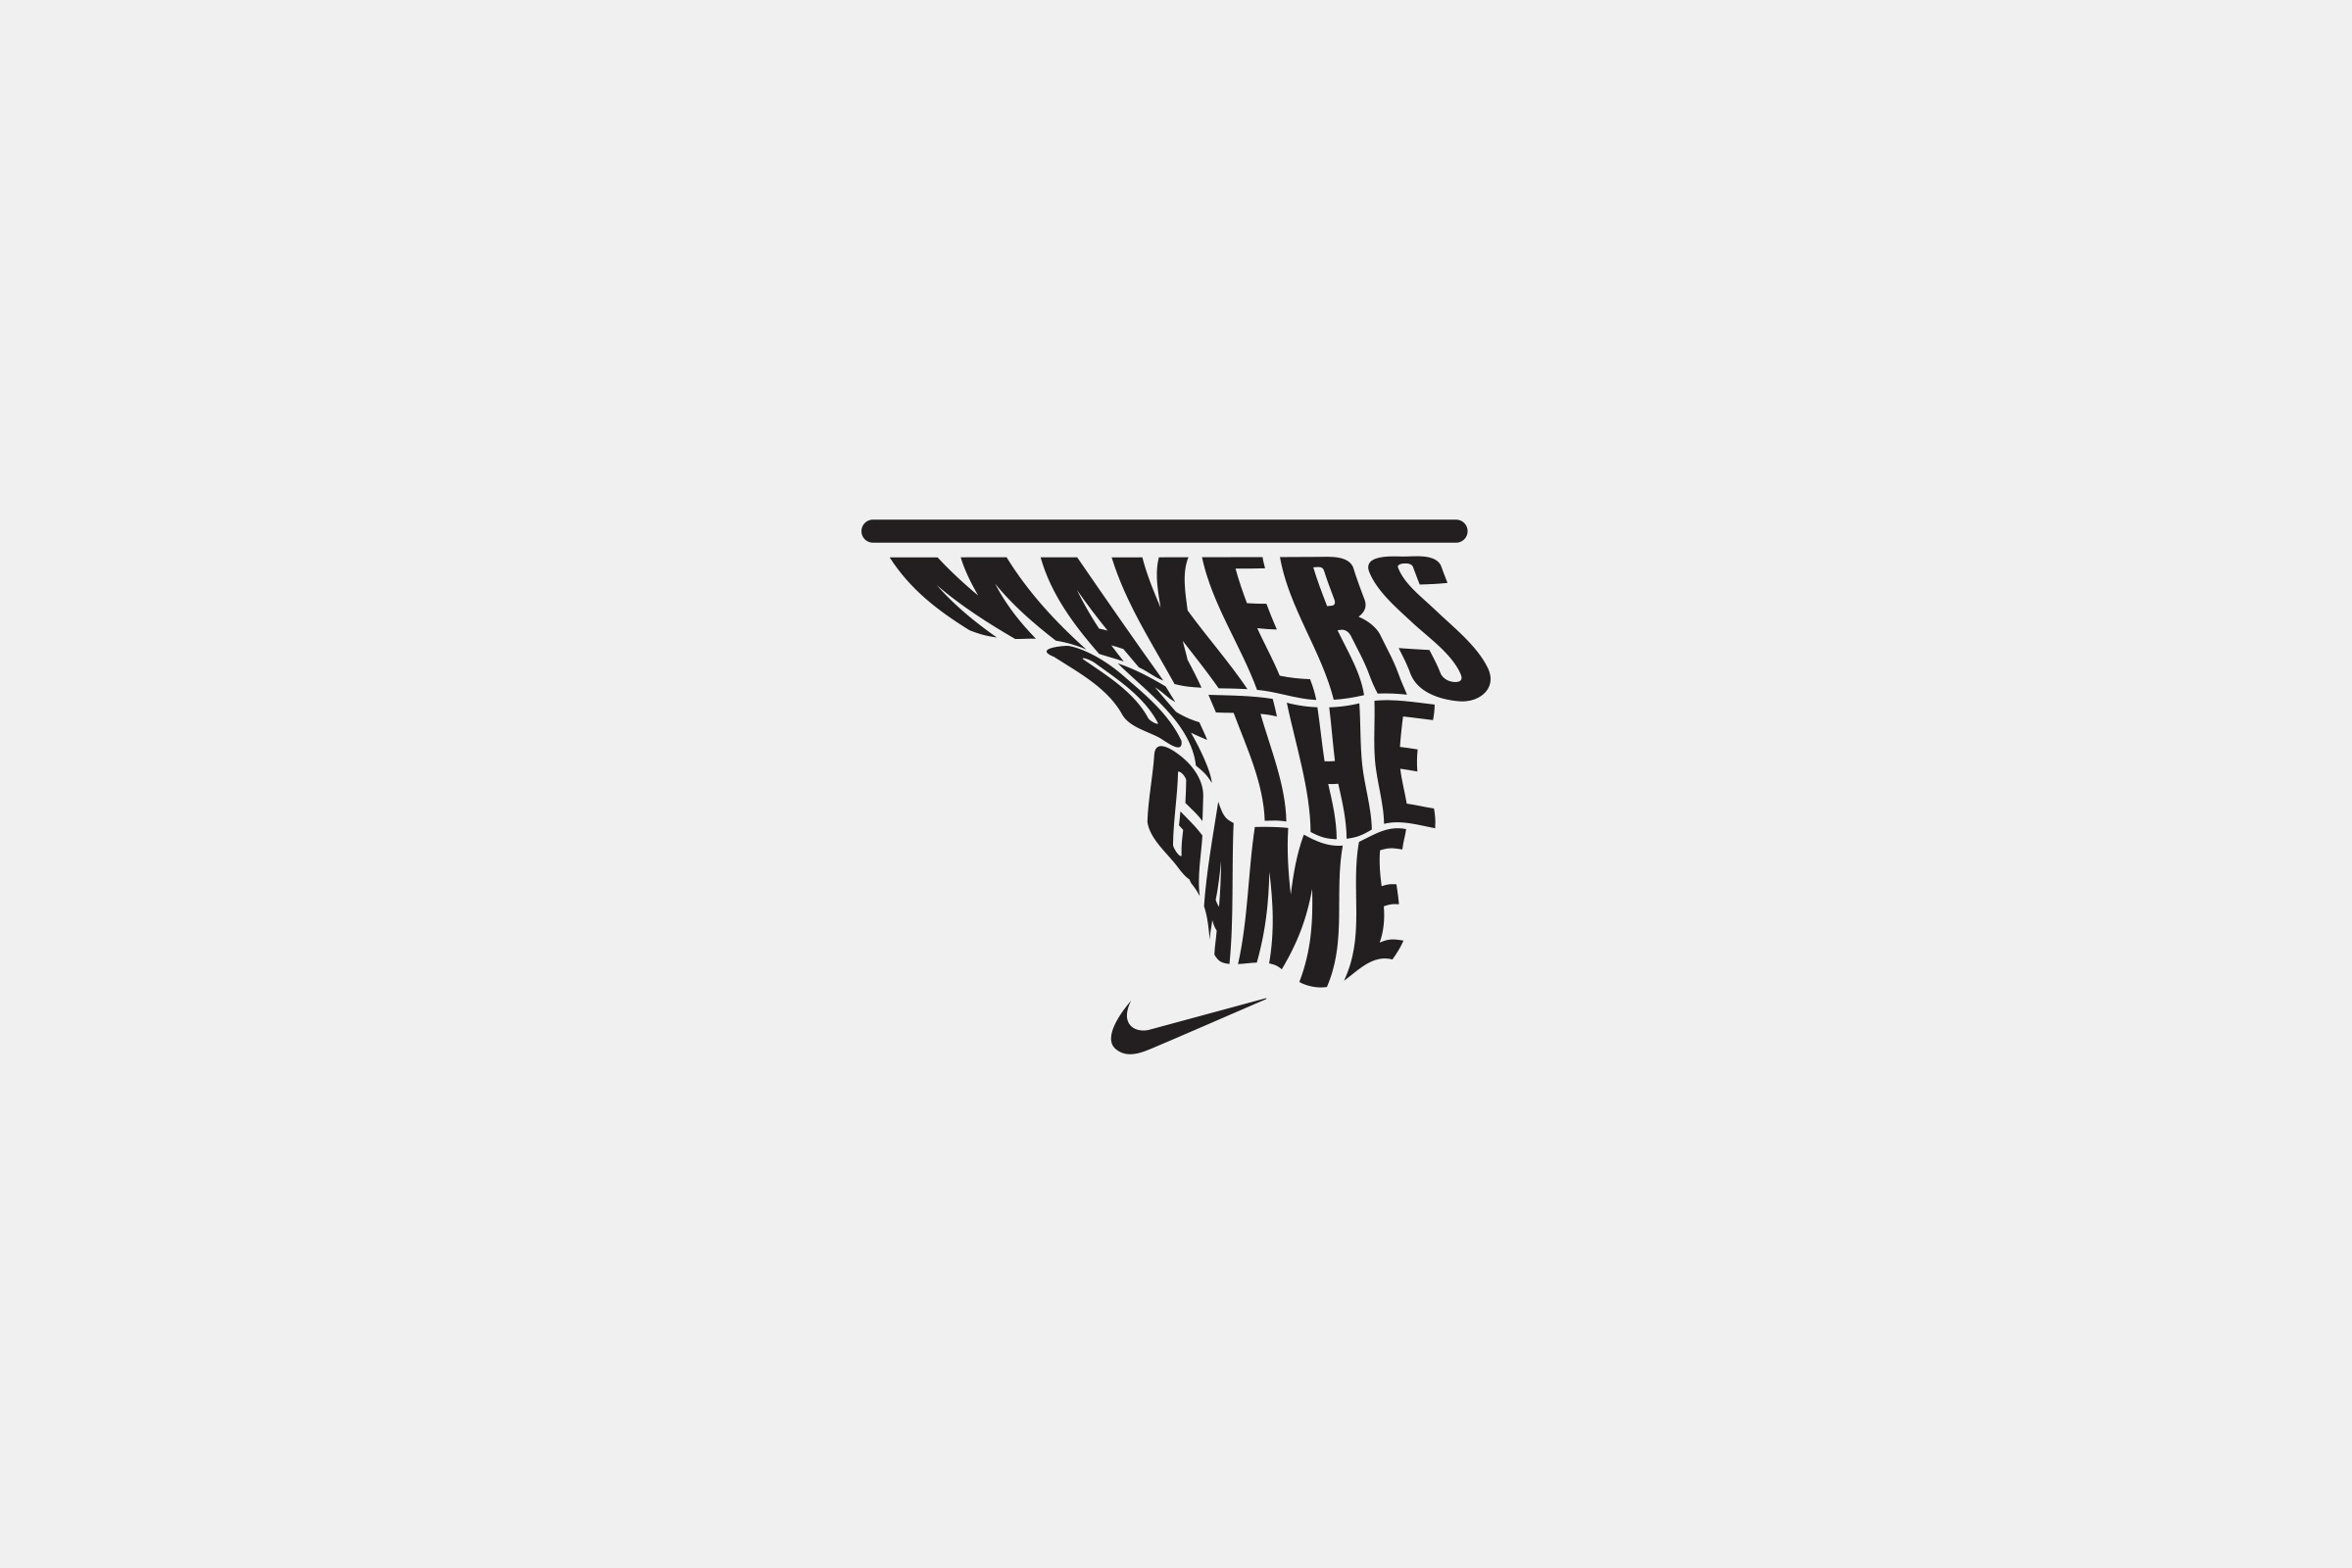 TBS_MakersOfTheGame_Logo_1